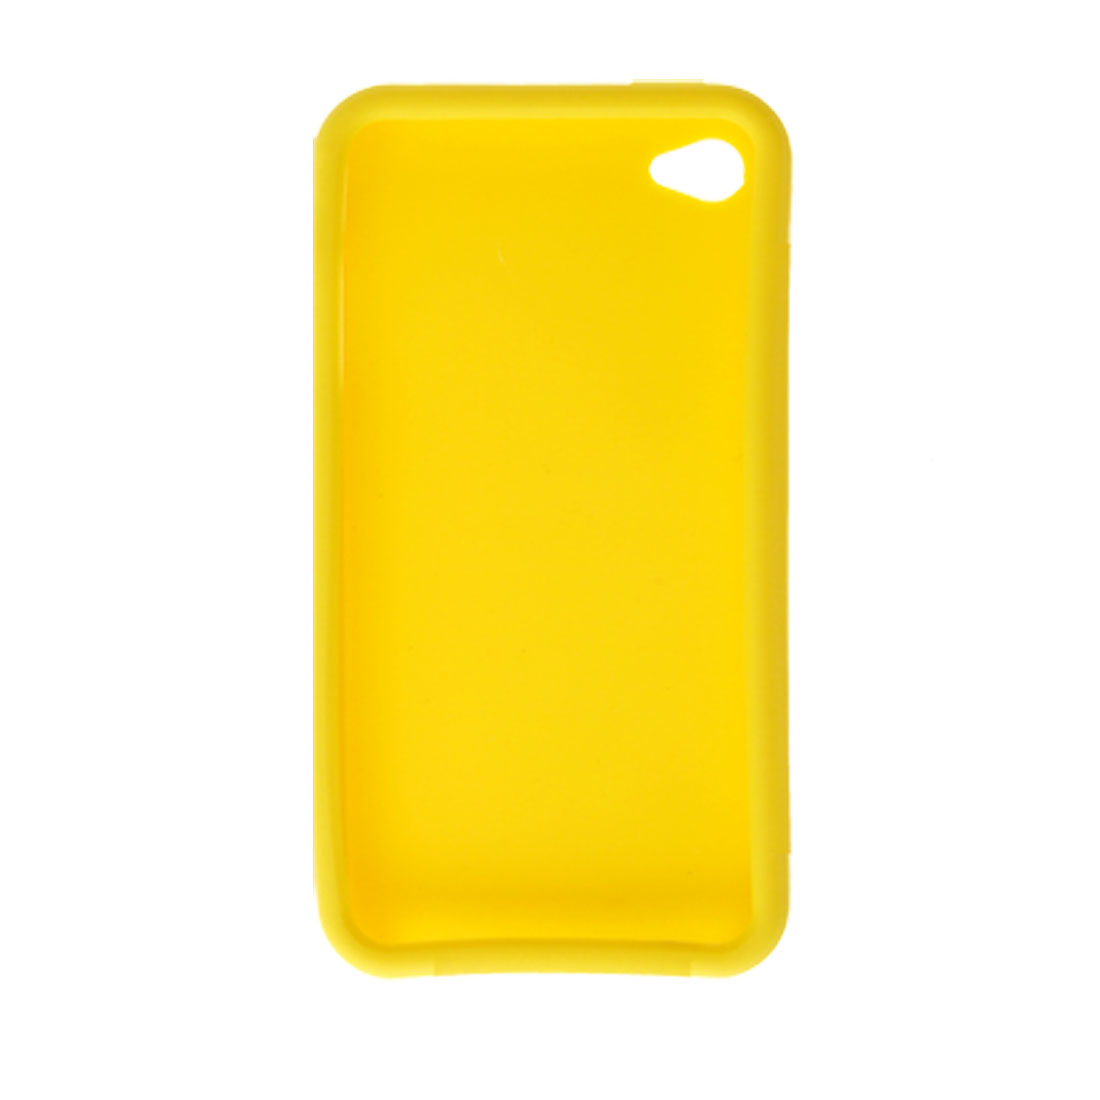 Phone Silicone Skin Protective Cover for Apple iPhone 4 Yellow